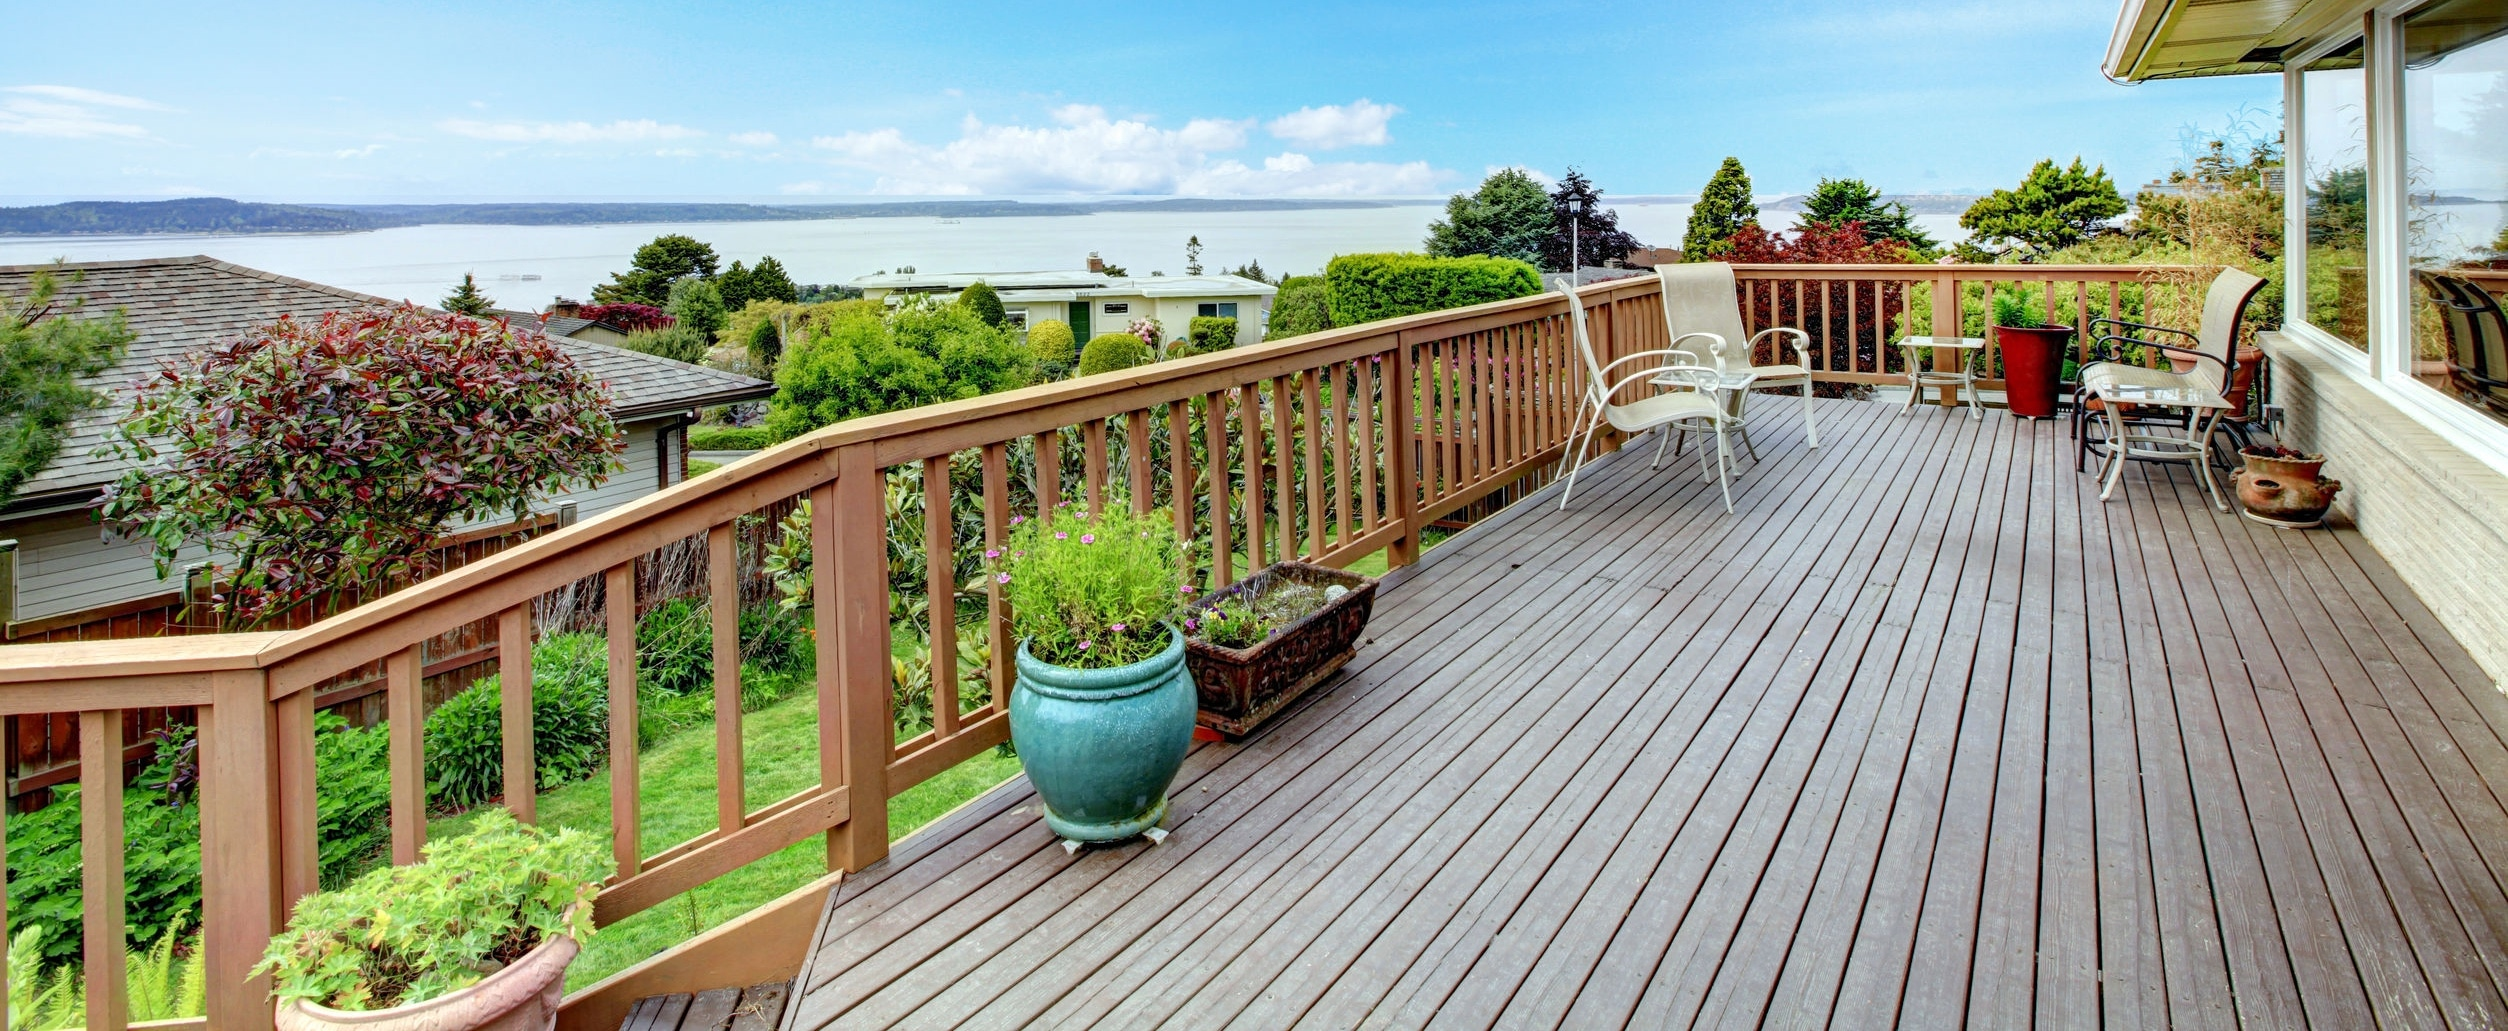 Deck outside of a home